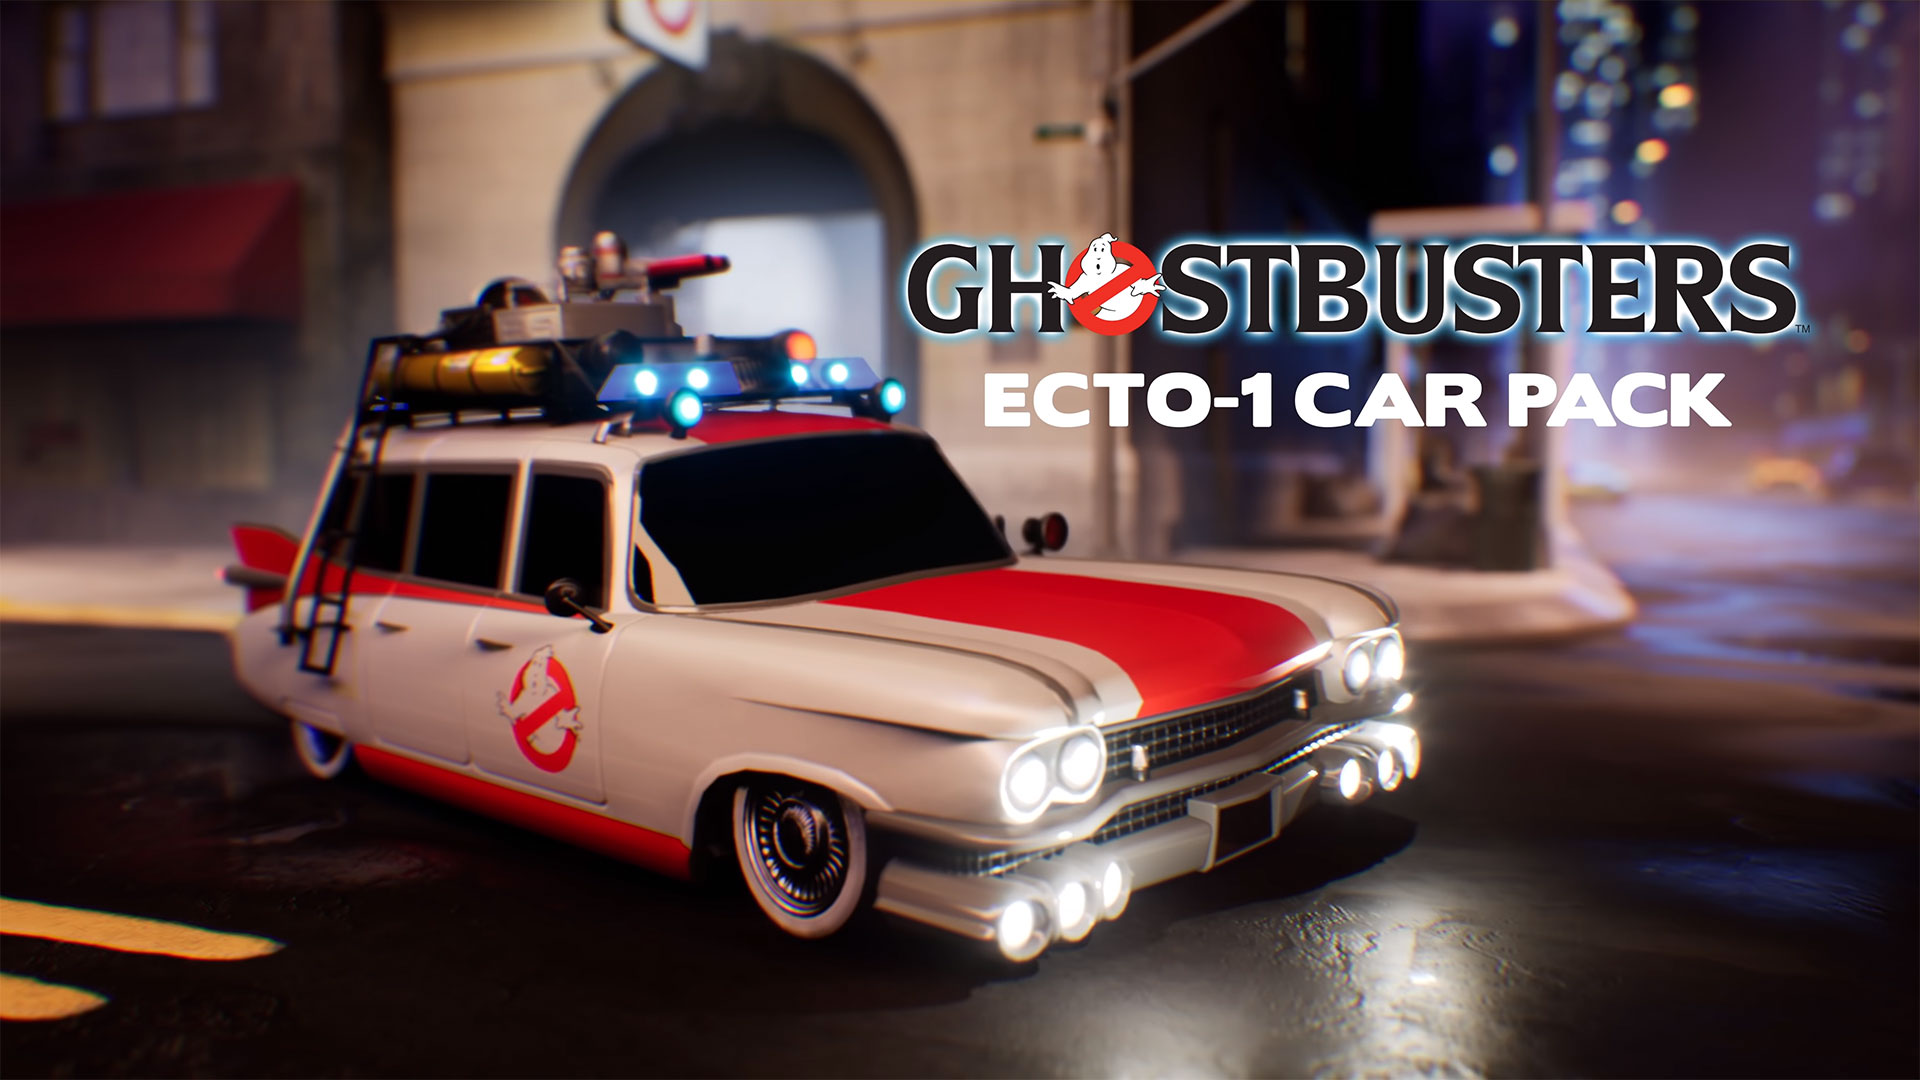 Rocket League Ghostbusters ECTO-1 Car Pack